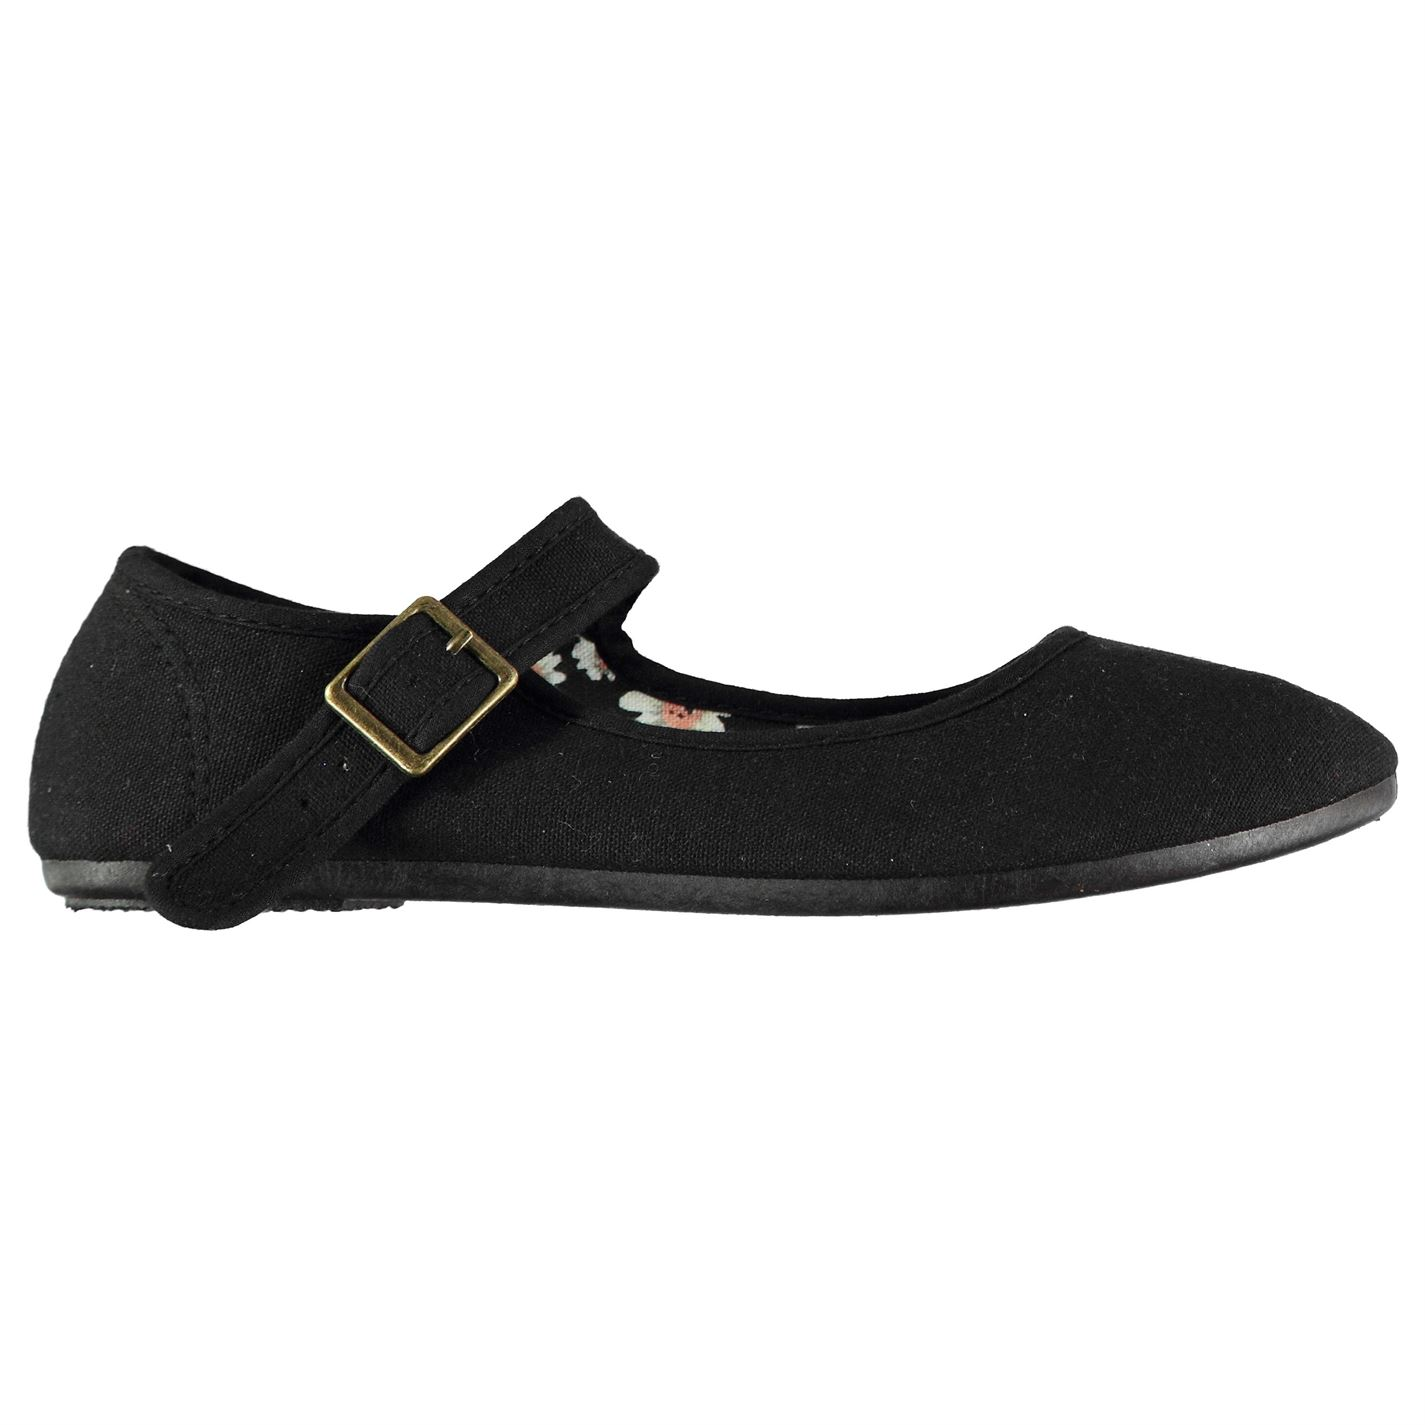 Slazenger Canvas Mary Jane Ladies Shoes Black